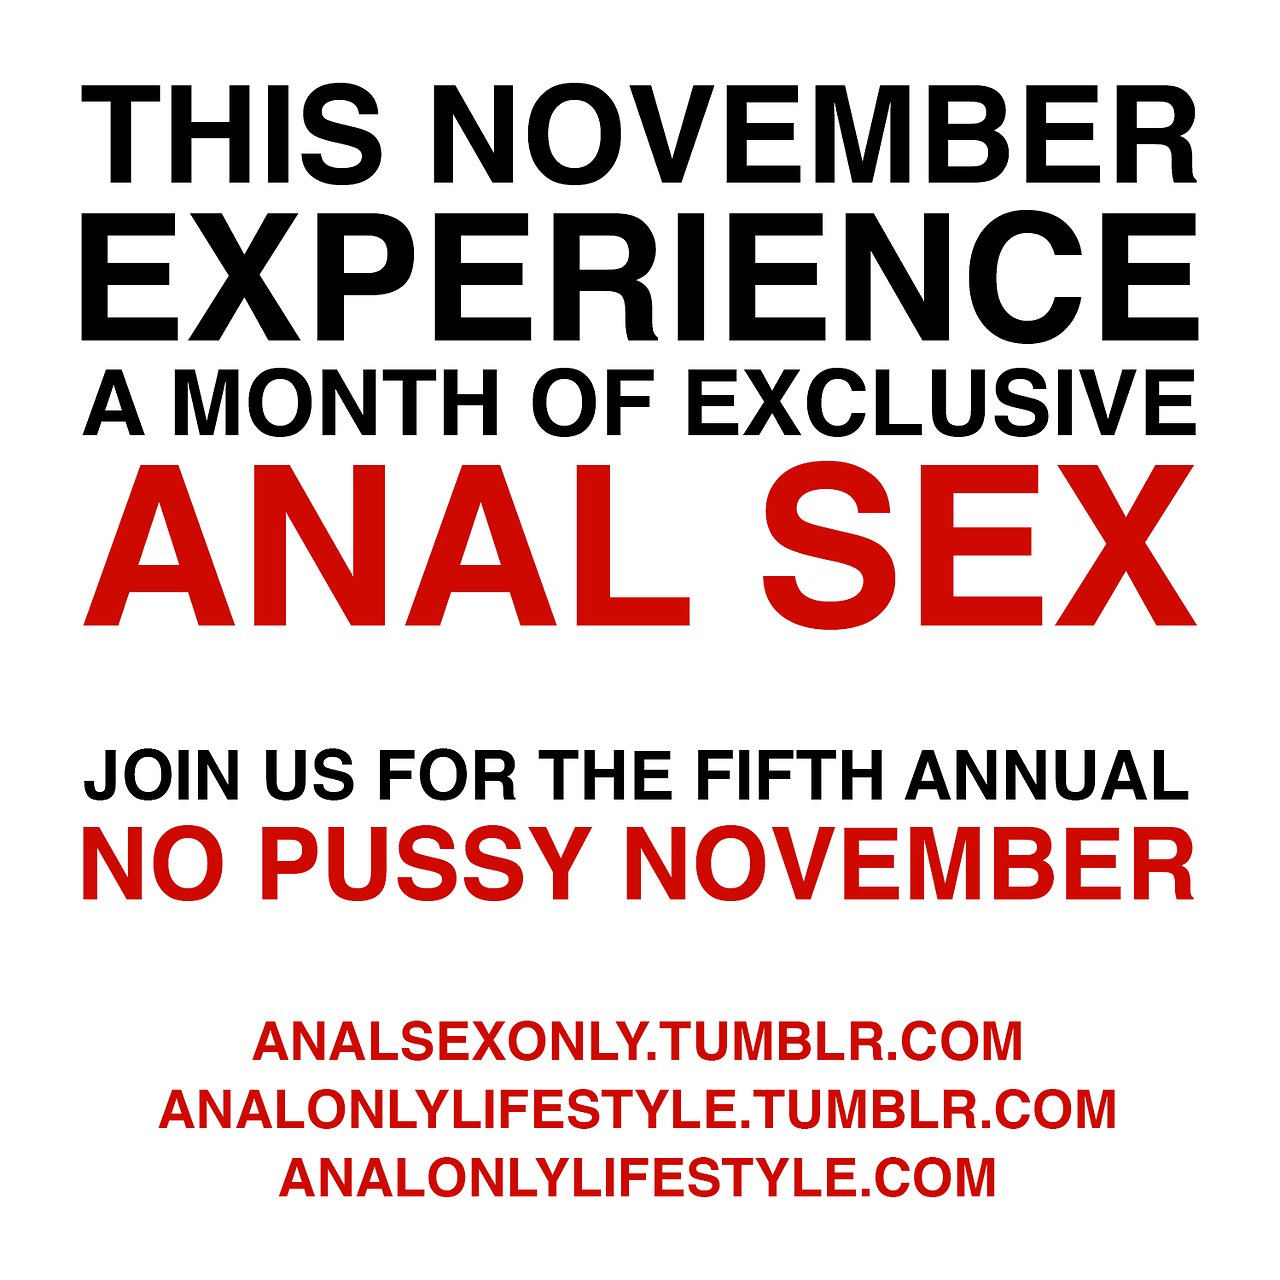 This November Experience A Month of Exclusive Anal Sex - Join Us In The Fifth Annual No Pussy November